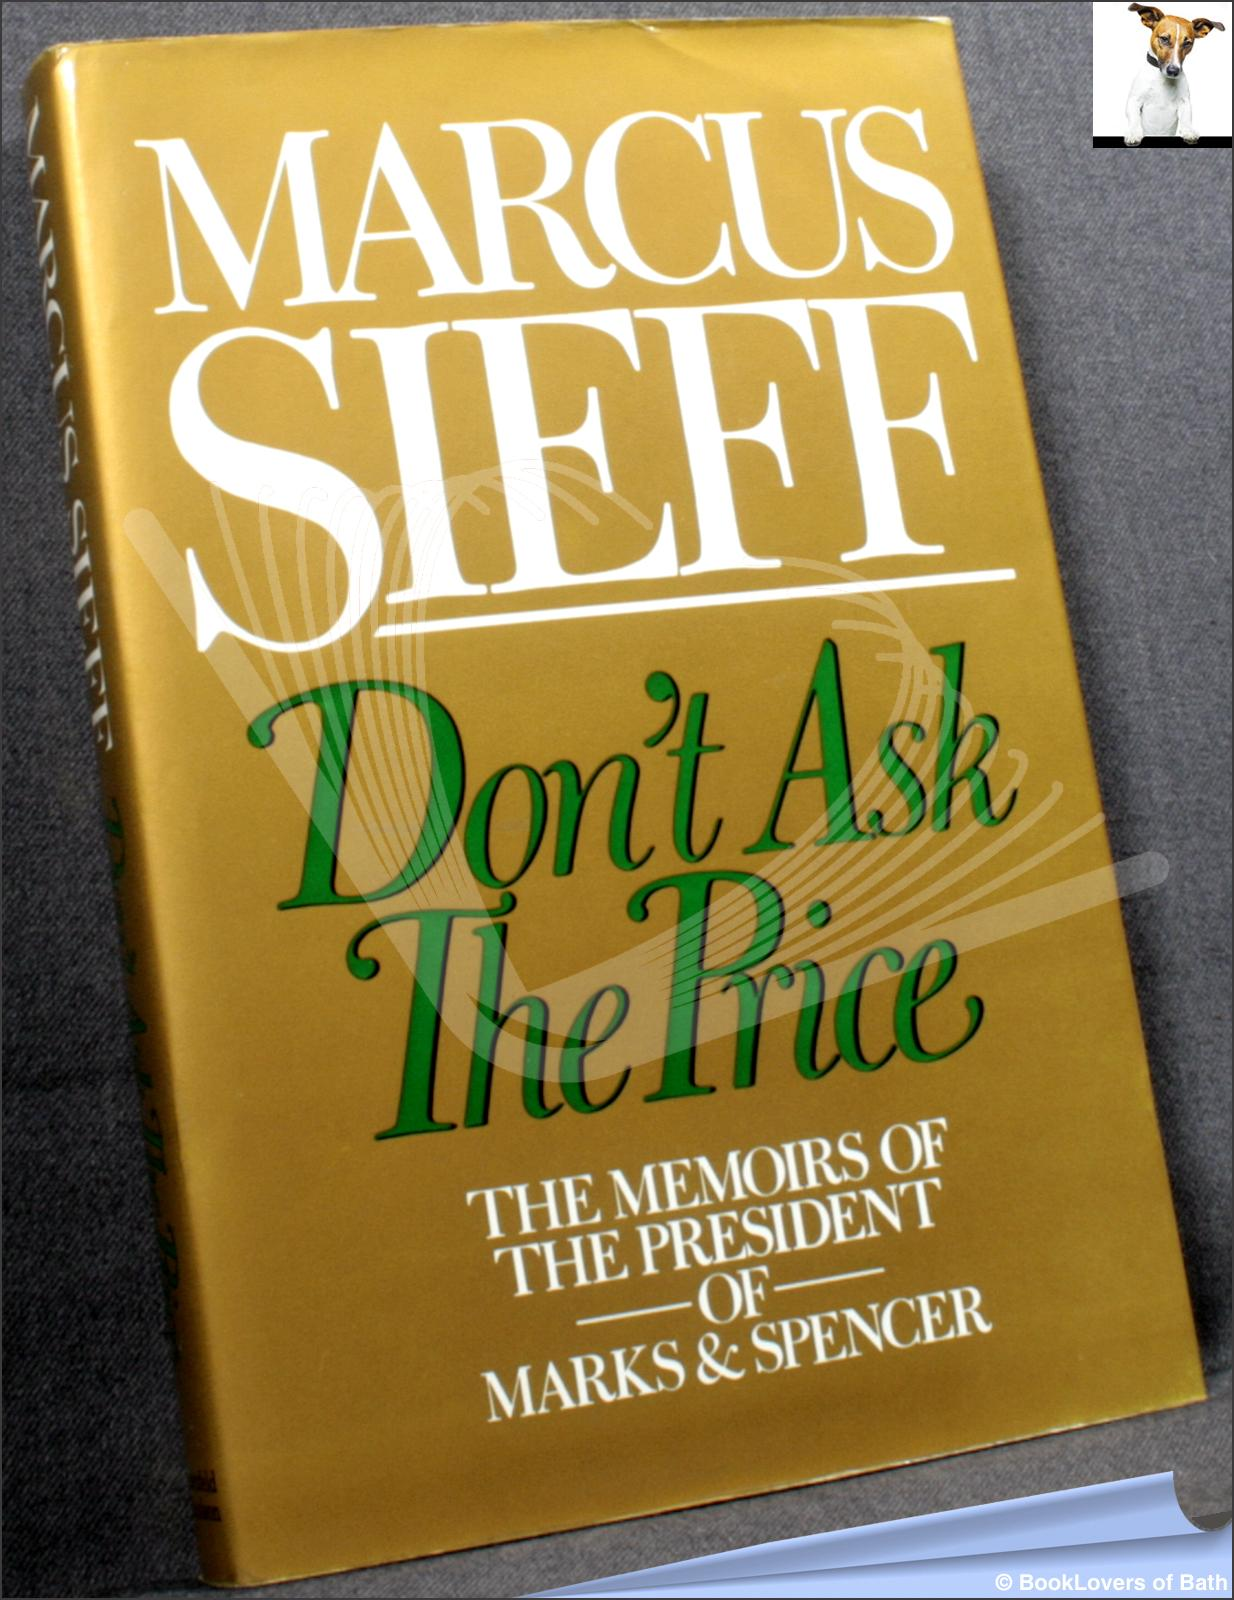 Don't Ask the Price: The Memoirs of the President of Marks & Spencer - Marcus Sieff